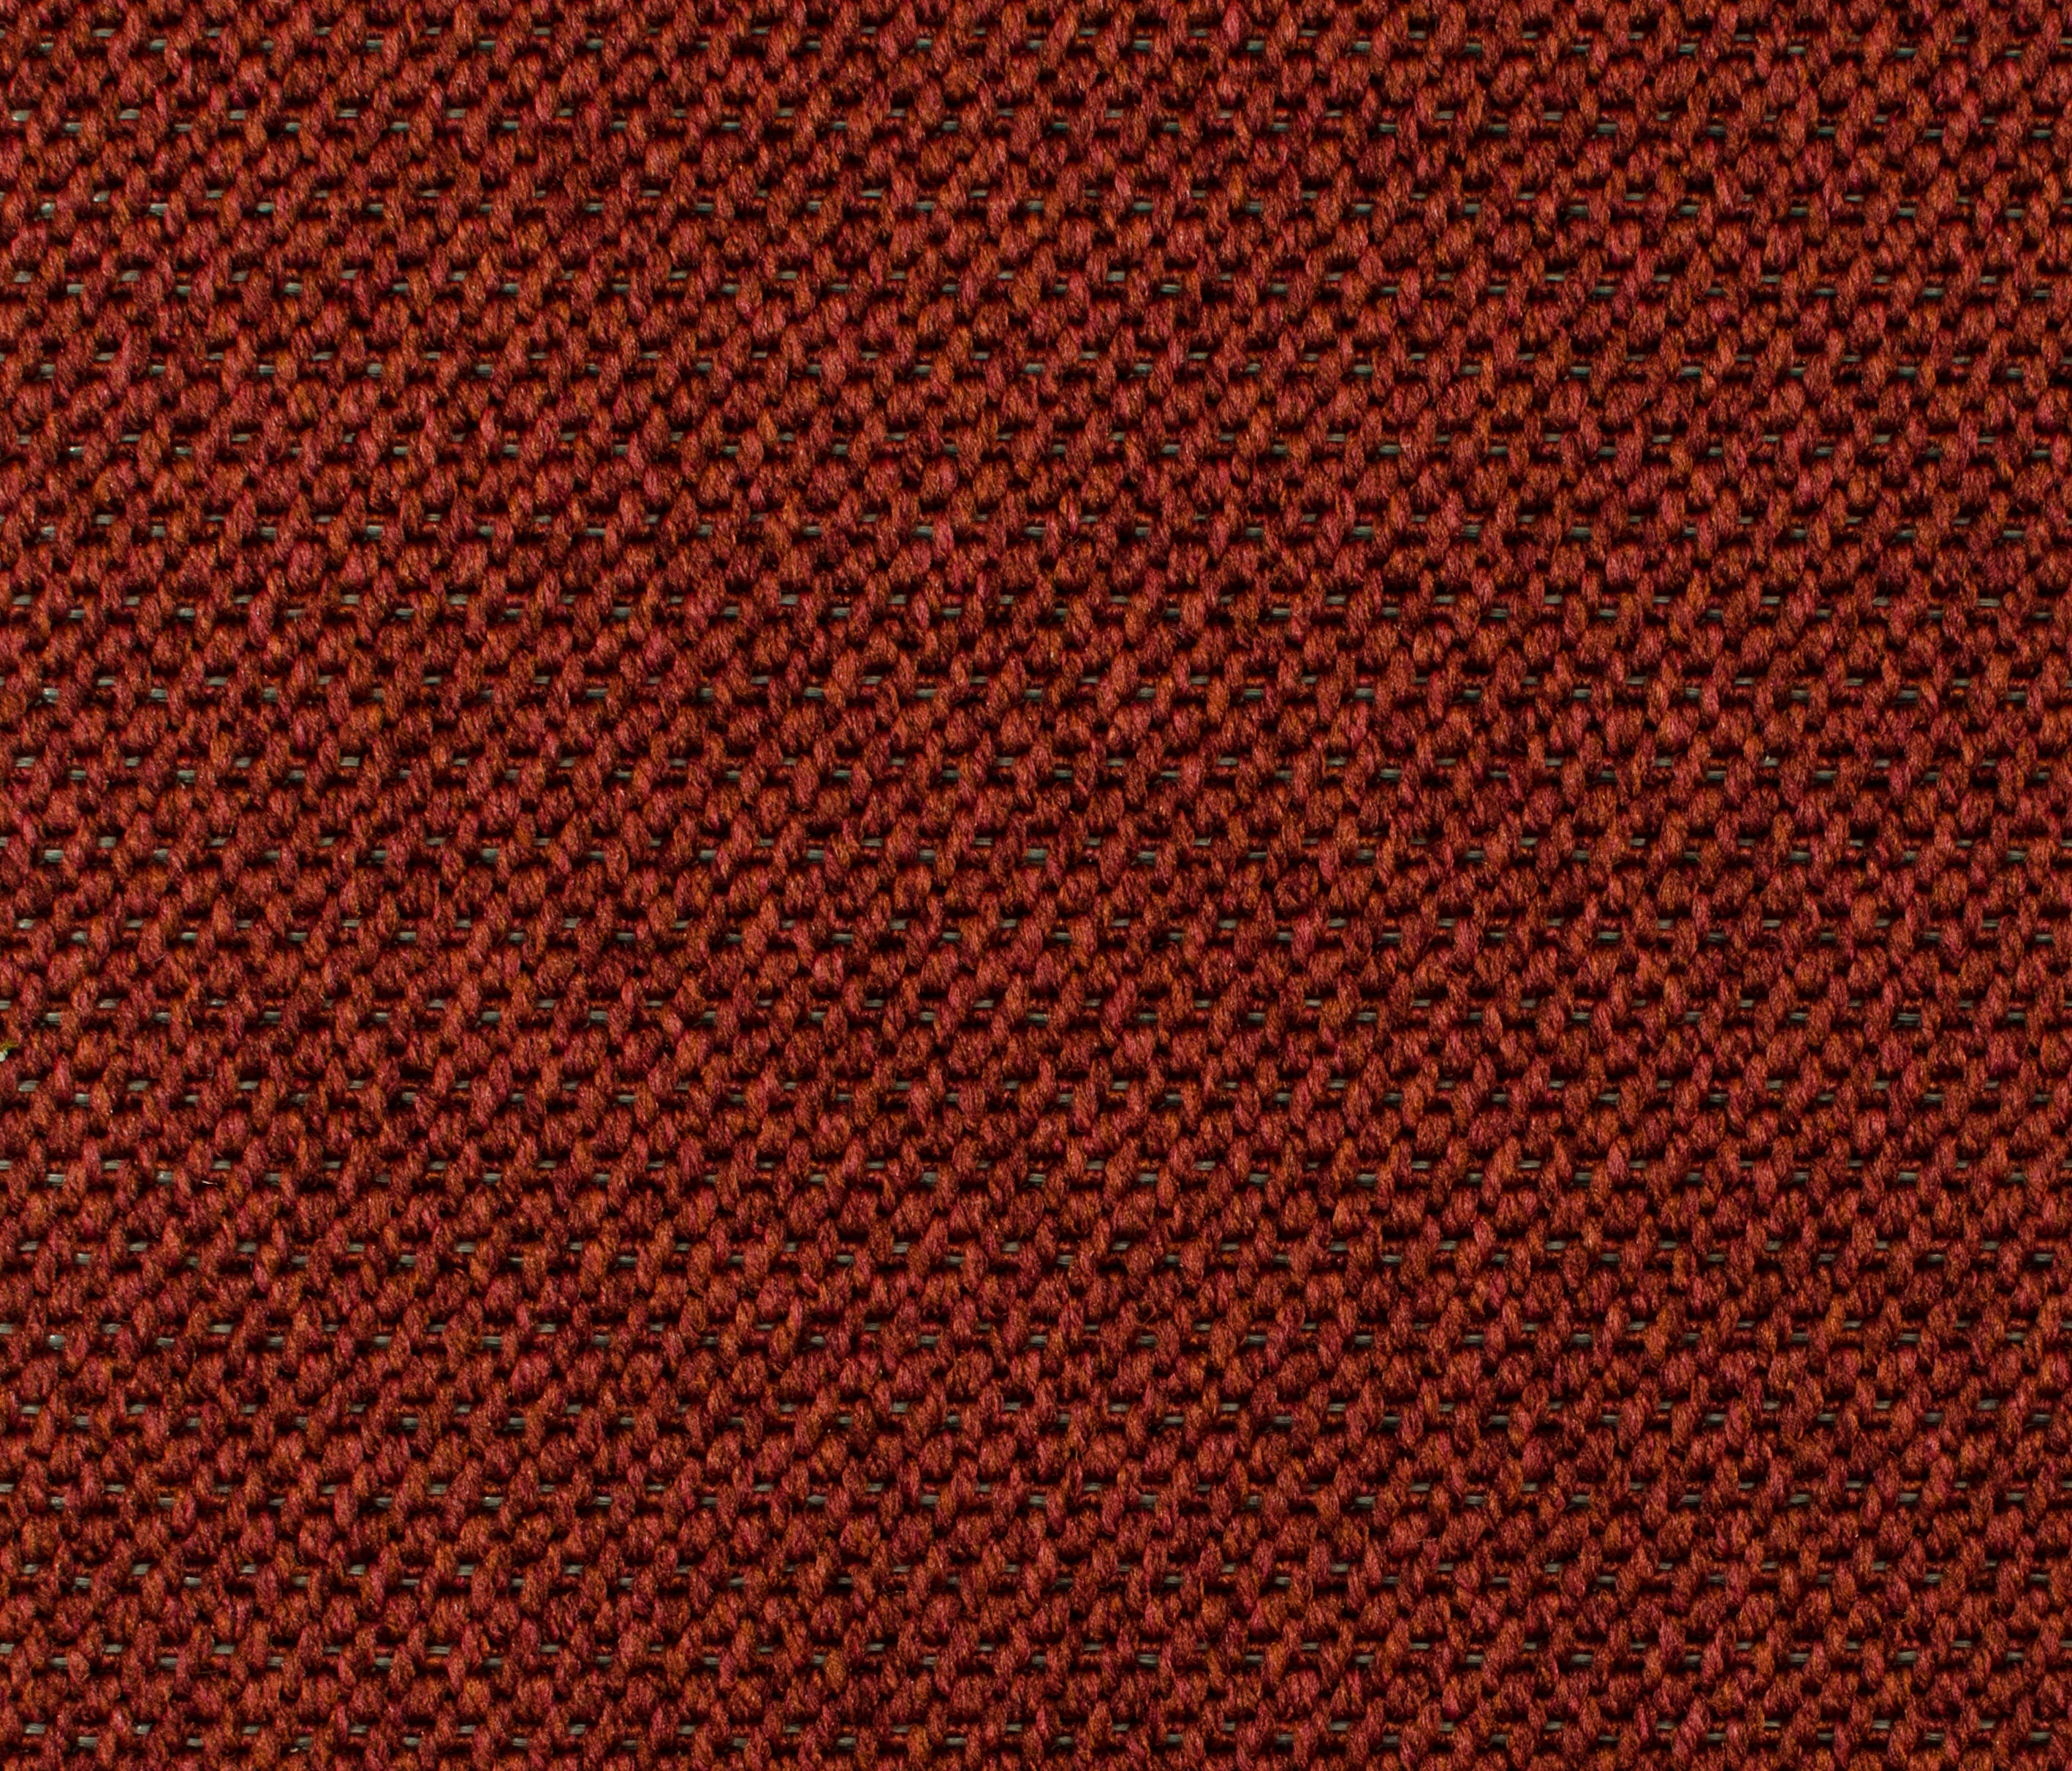 Eco tec 280009 1940 wall to wall carpets from carpet for Wall to wall carpeting prices